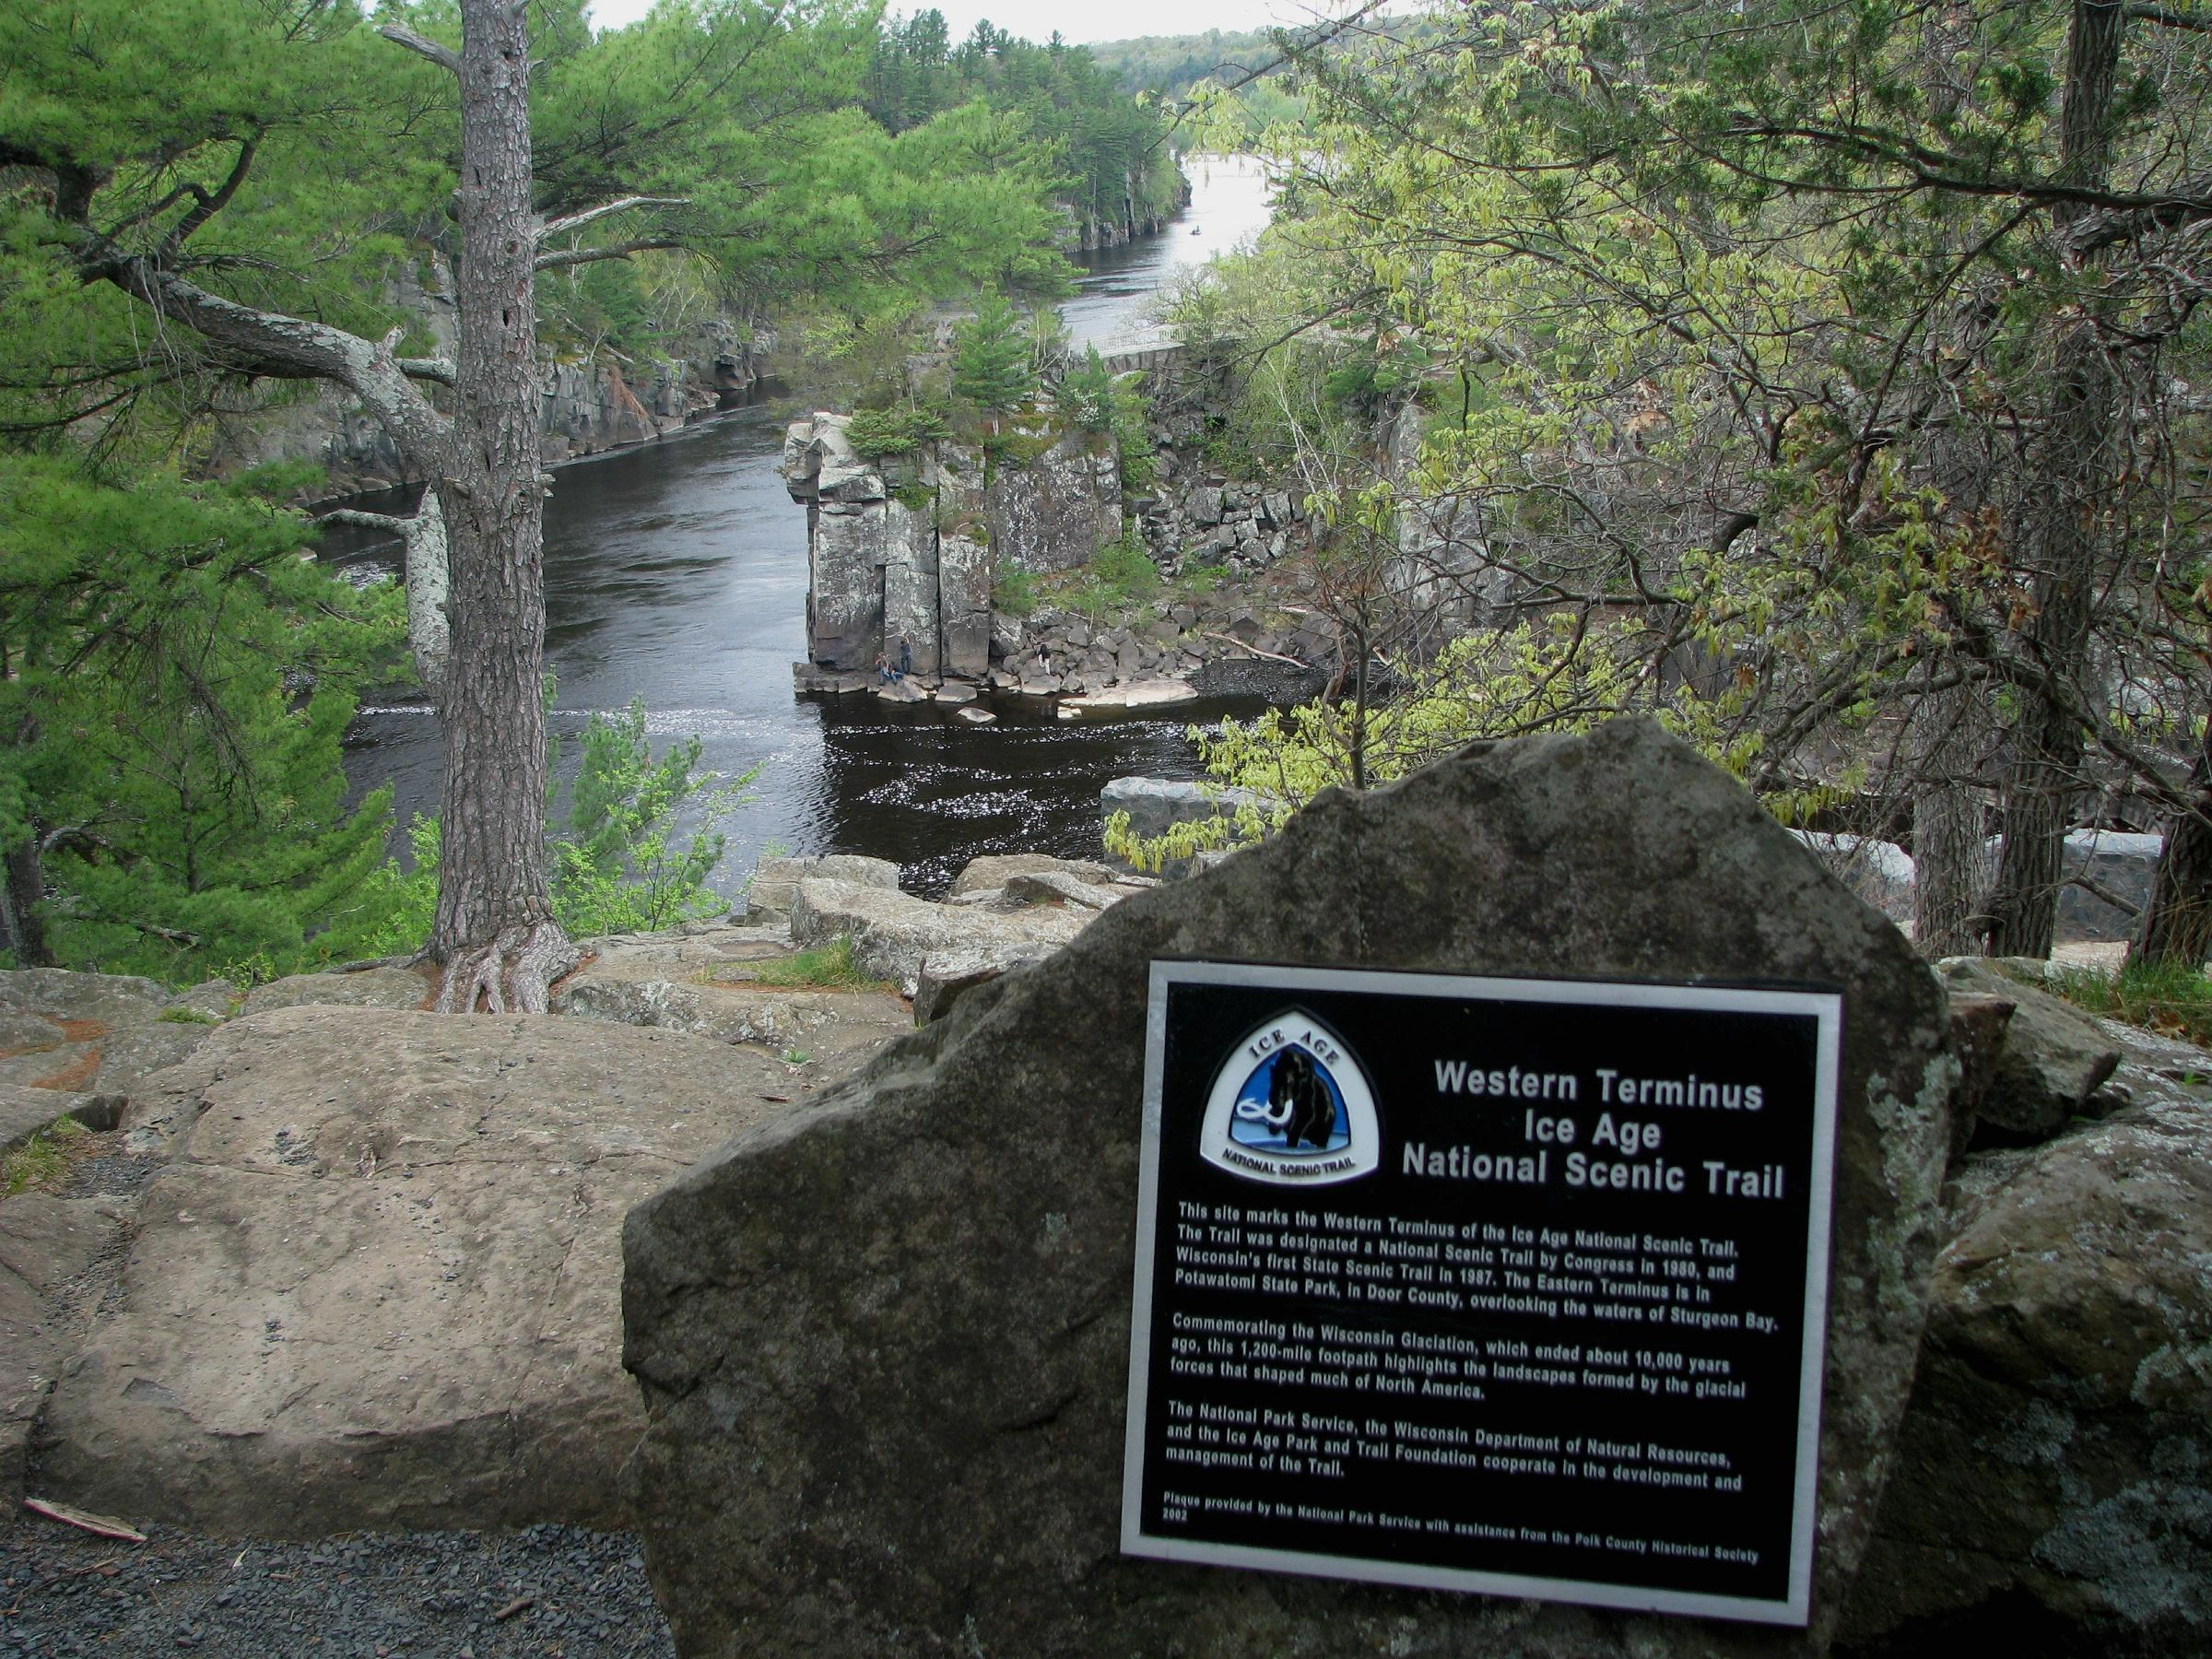 Western Terminus of the Ice Age National Scenic Trail. Photo by MDuchek at English Wikipedia. Photo is in the Public Domain.